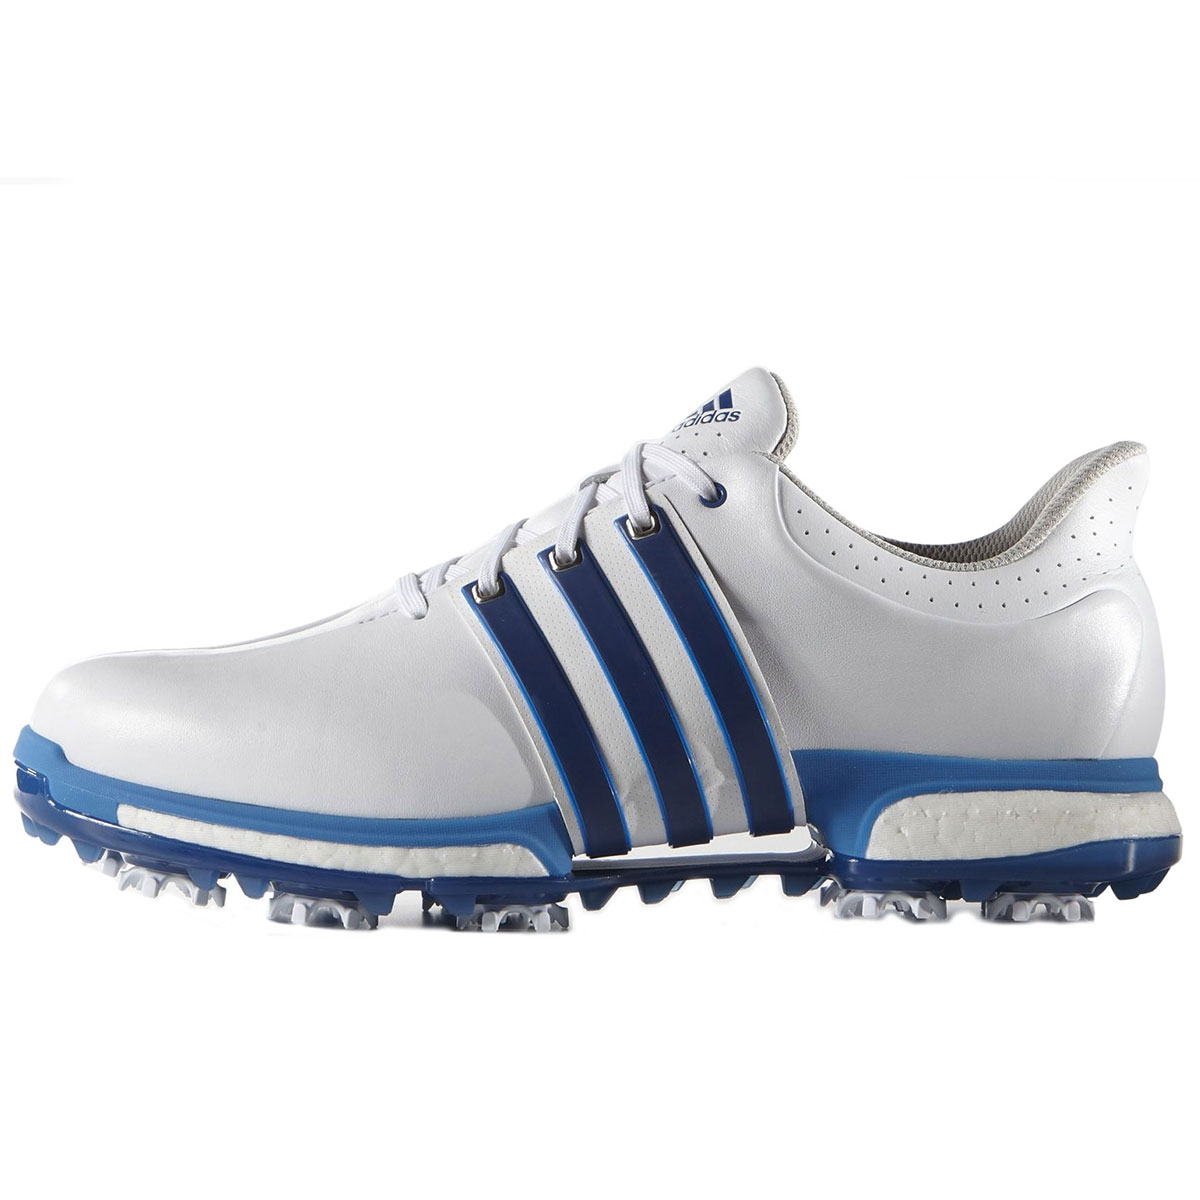 adidas tour 360 boost sale, OFF 76%,Cheap price!